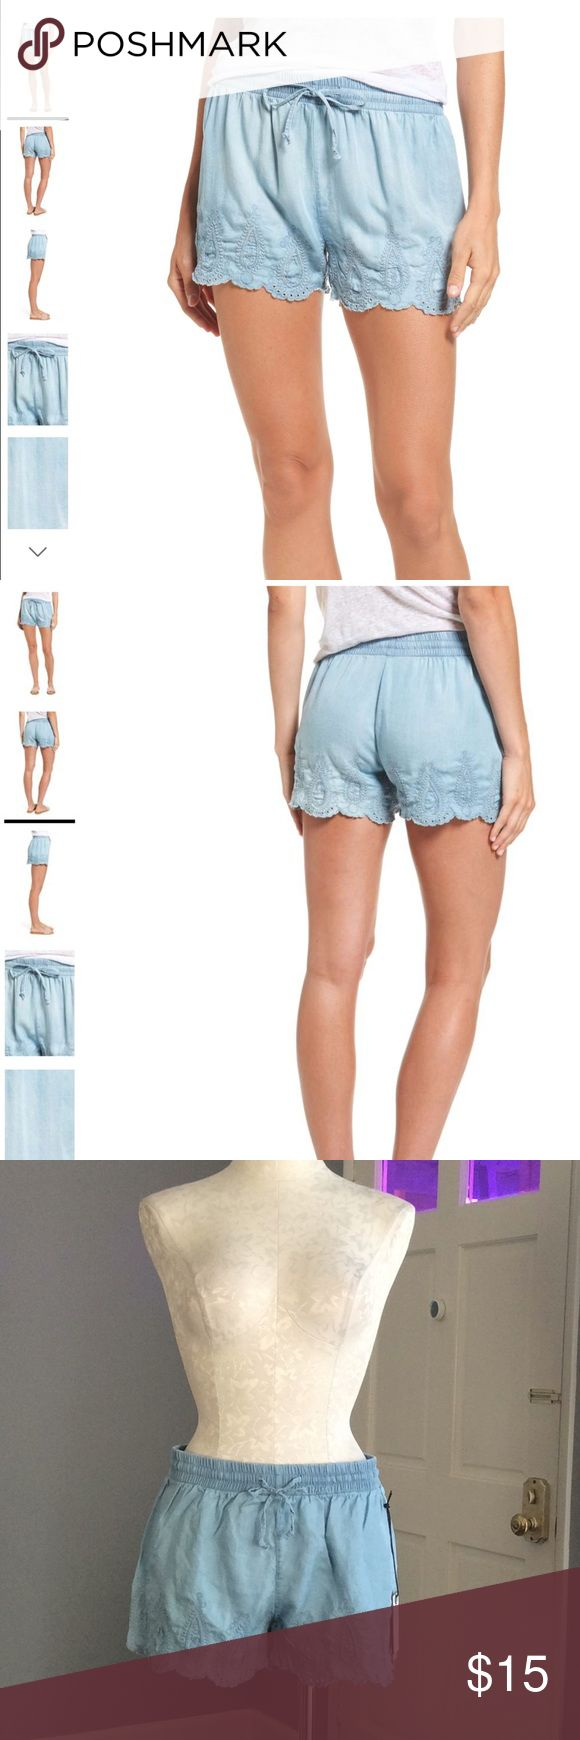 """Dex Jeans Chambray Eyelet Shorts NWT! Dex Jeans shorts size small. A delicately scalloped border of embroidered eyelet sweetens these ultra-comfy shorts of soft chambray. No lining.  2 1/2"""" inseam; 25"""" leg opening; 9 1/2"""" front rise; 13"""" back rise  Pull-on style; elasticized drawstring waist 100% Tencel lyocell Machine wash, line dry Dex Jeans Shorts"""